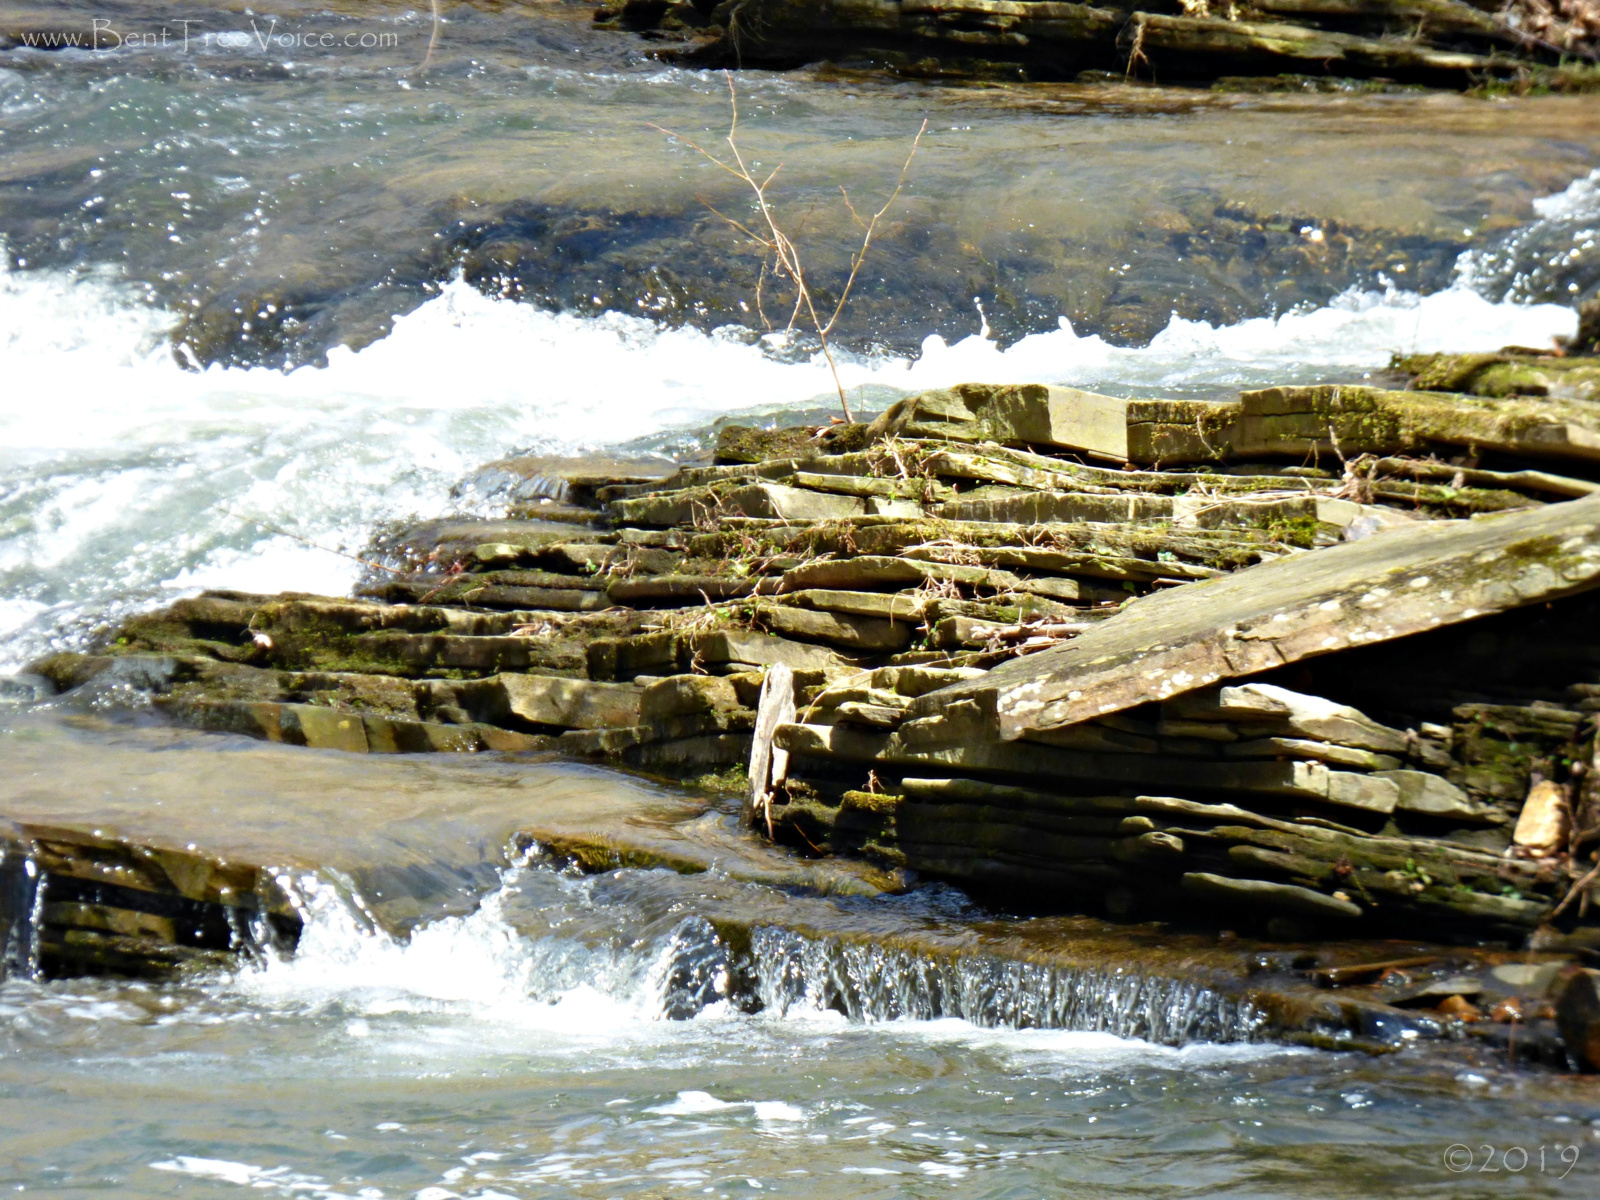 March 7, 2019 - Layers of rocks at creek's edge in Bent Tree